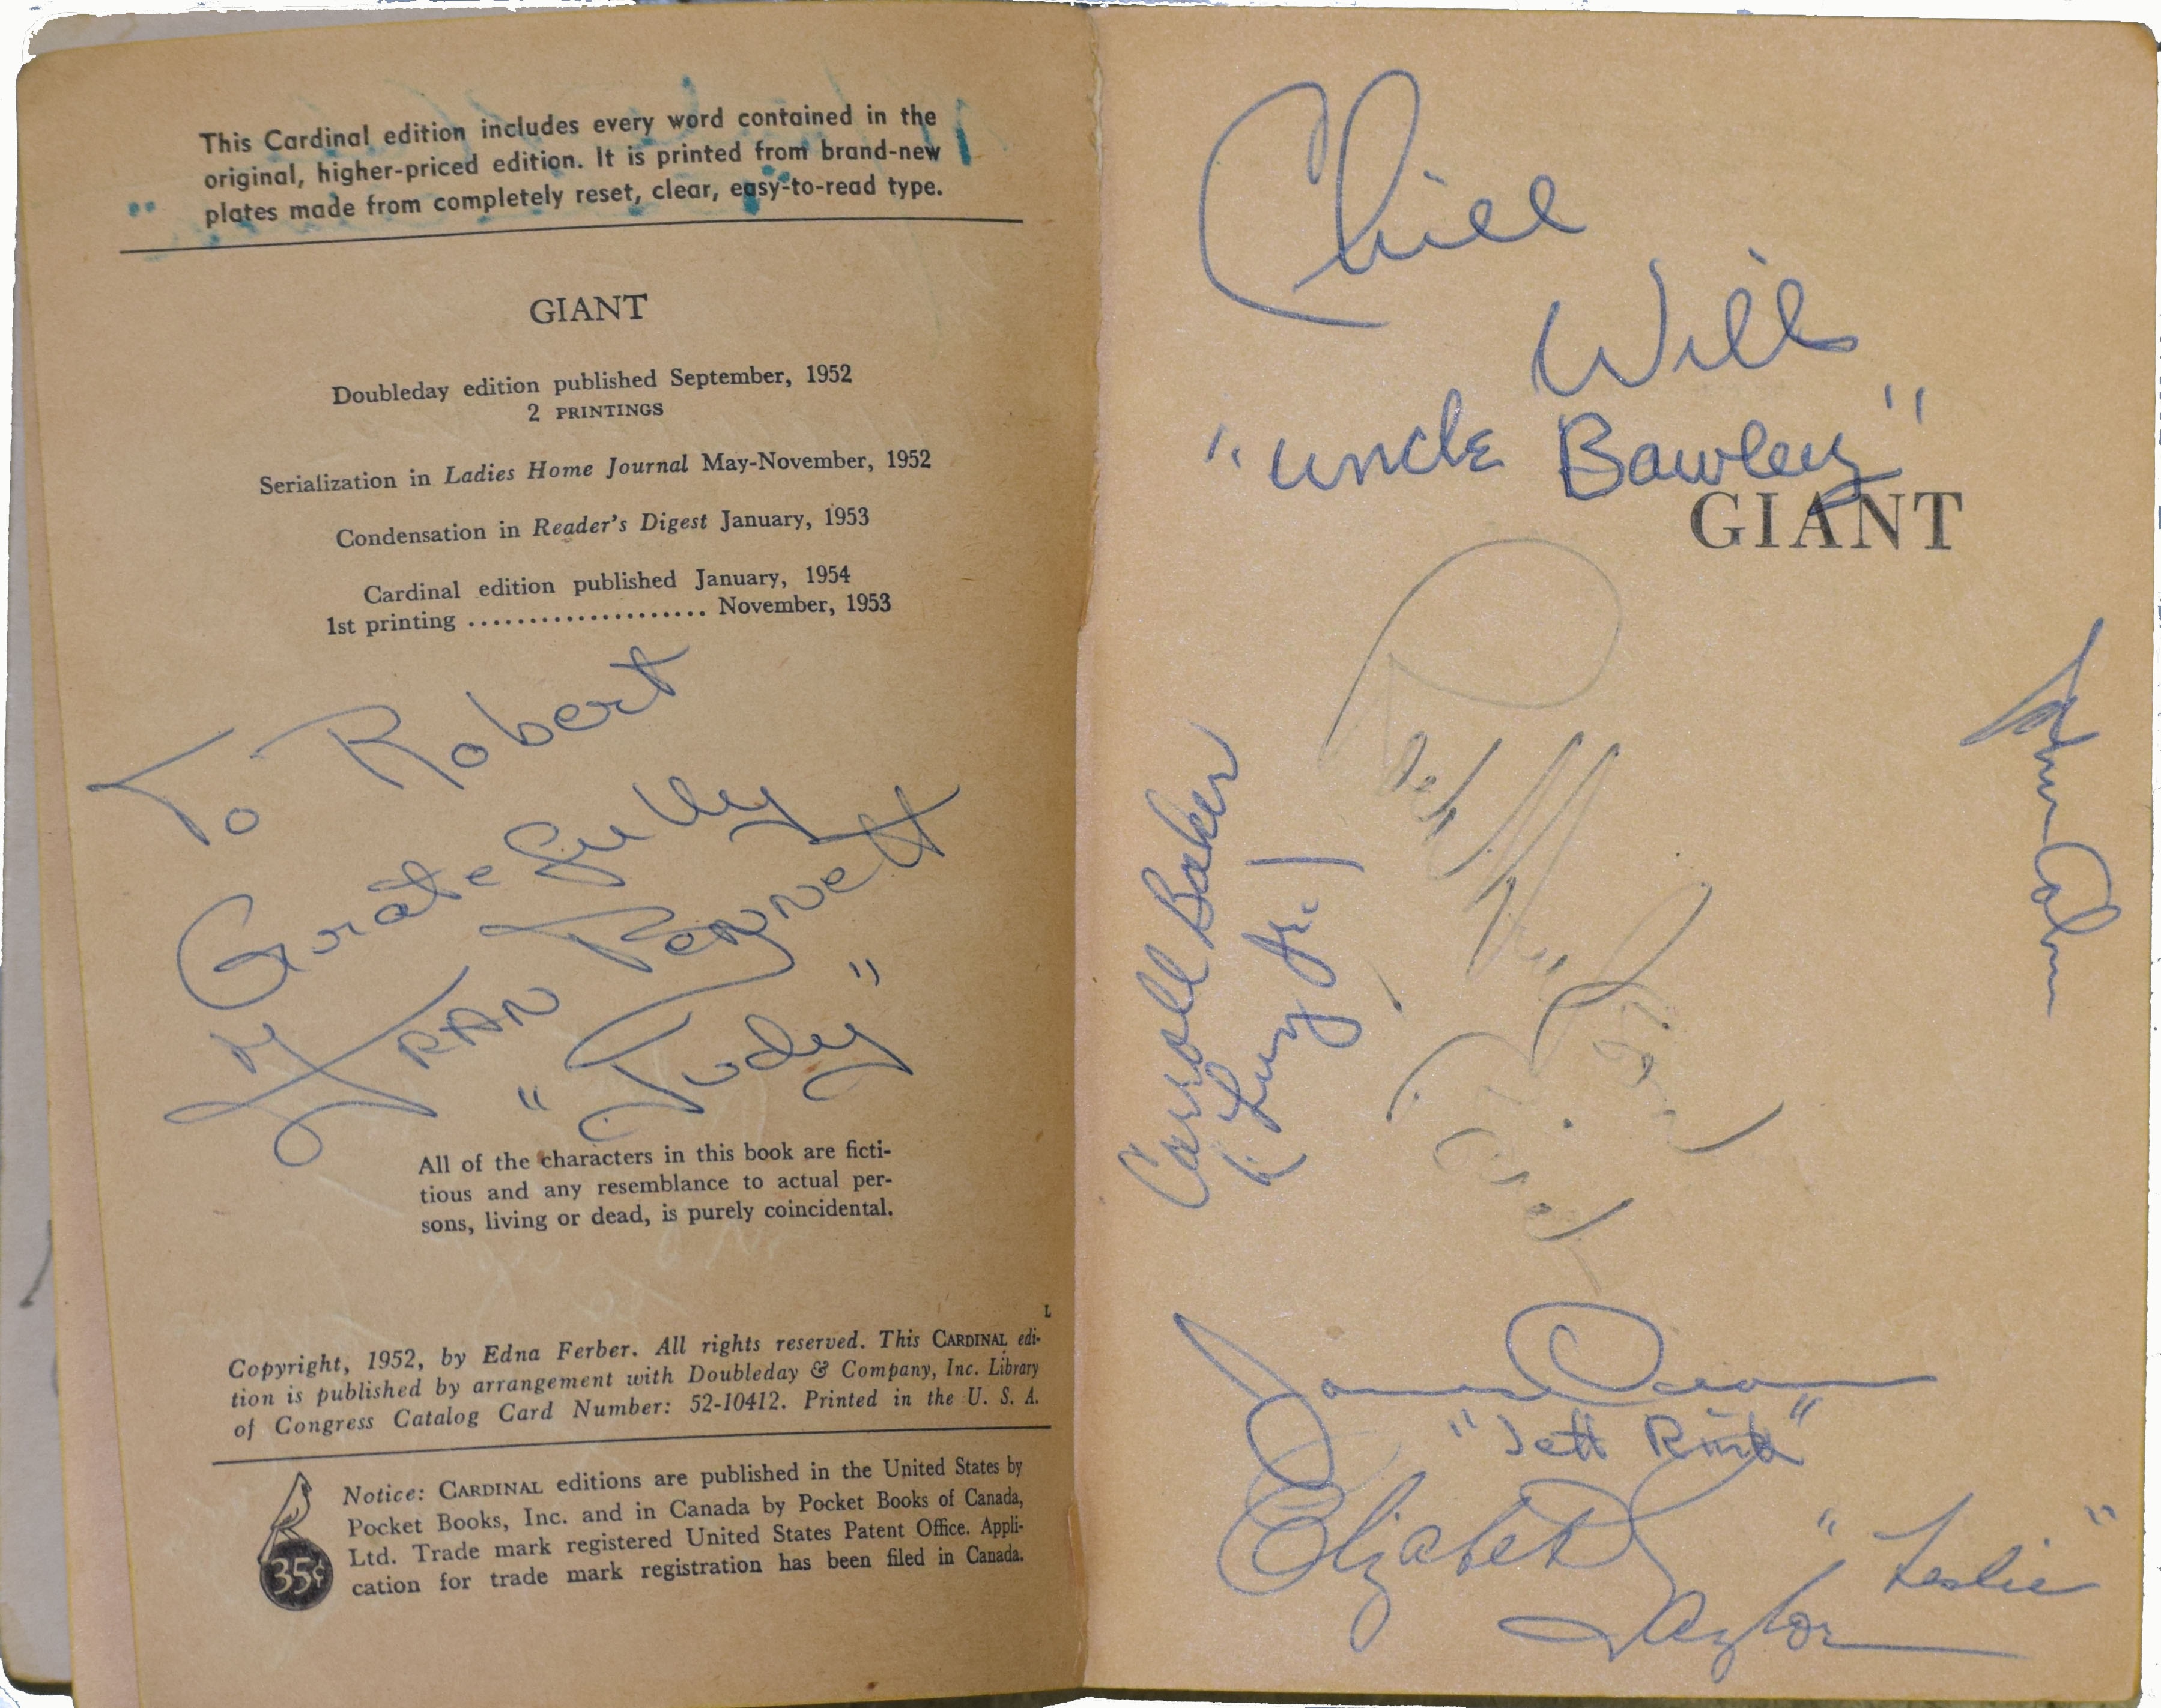 1952 Edna Ferber Incredible Crew Signed Copy Of Giant By The